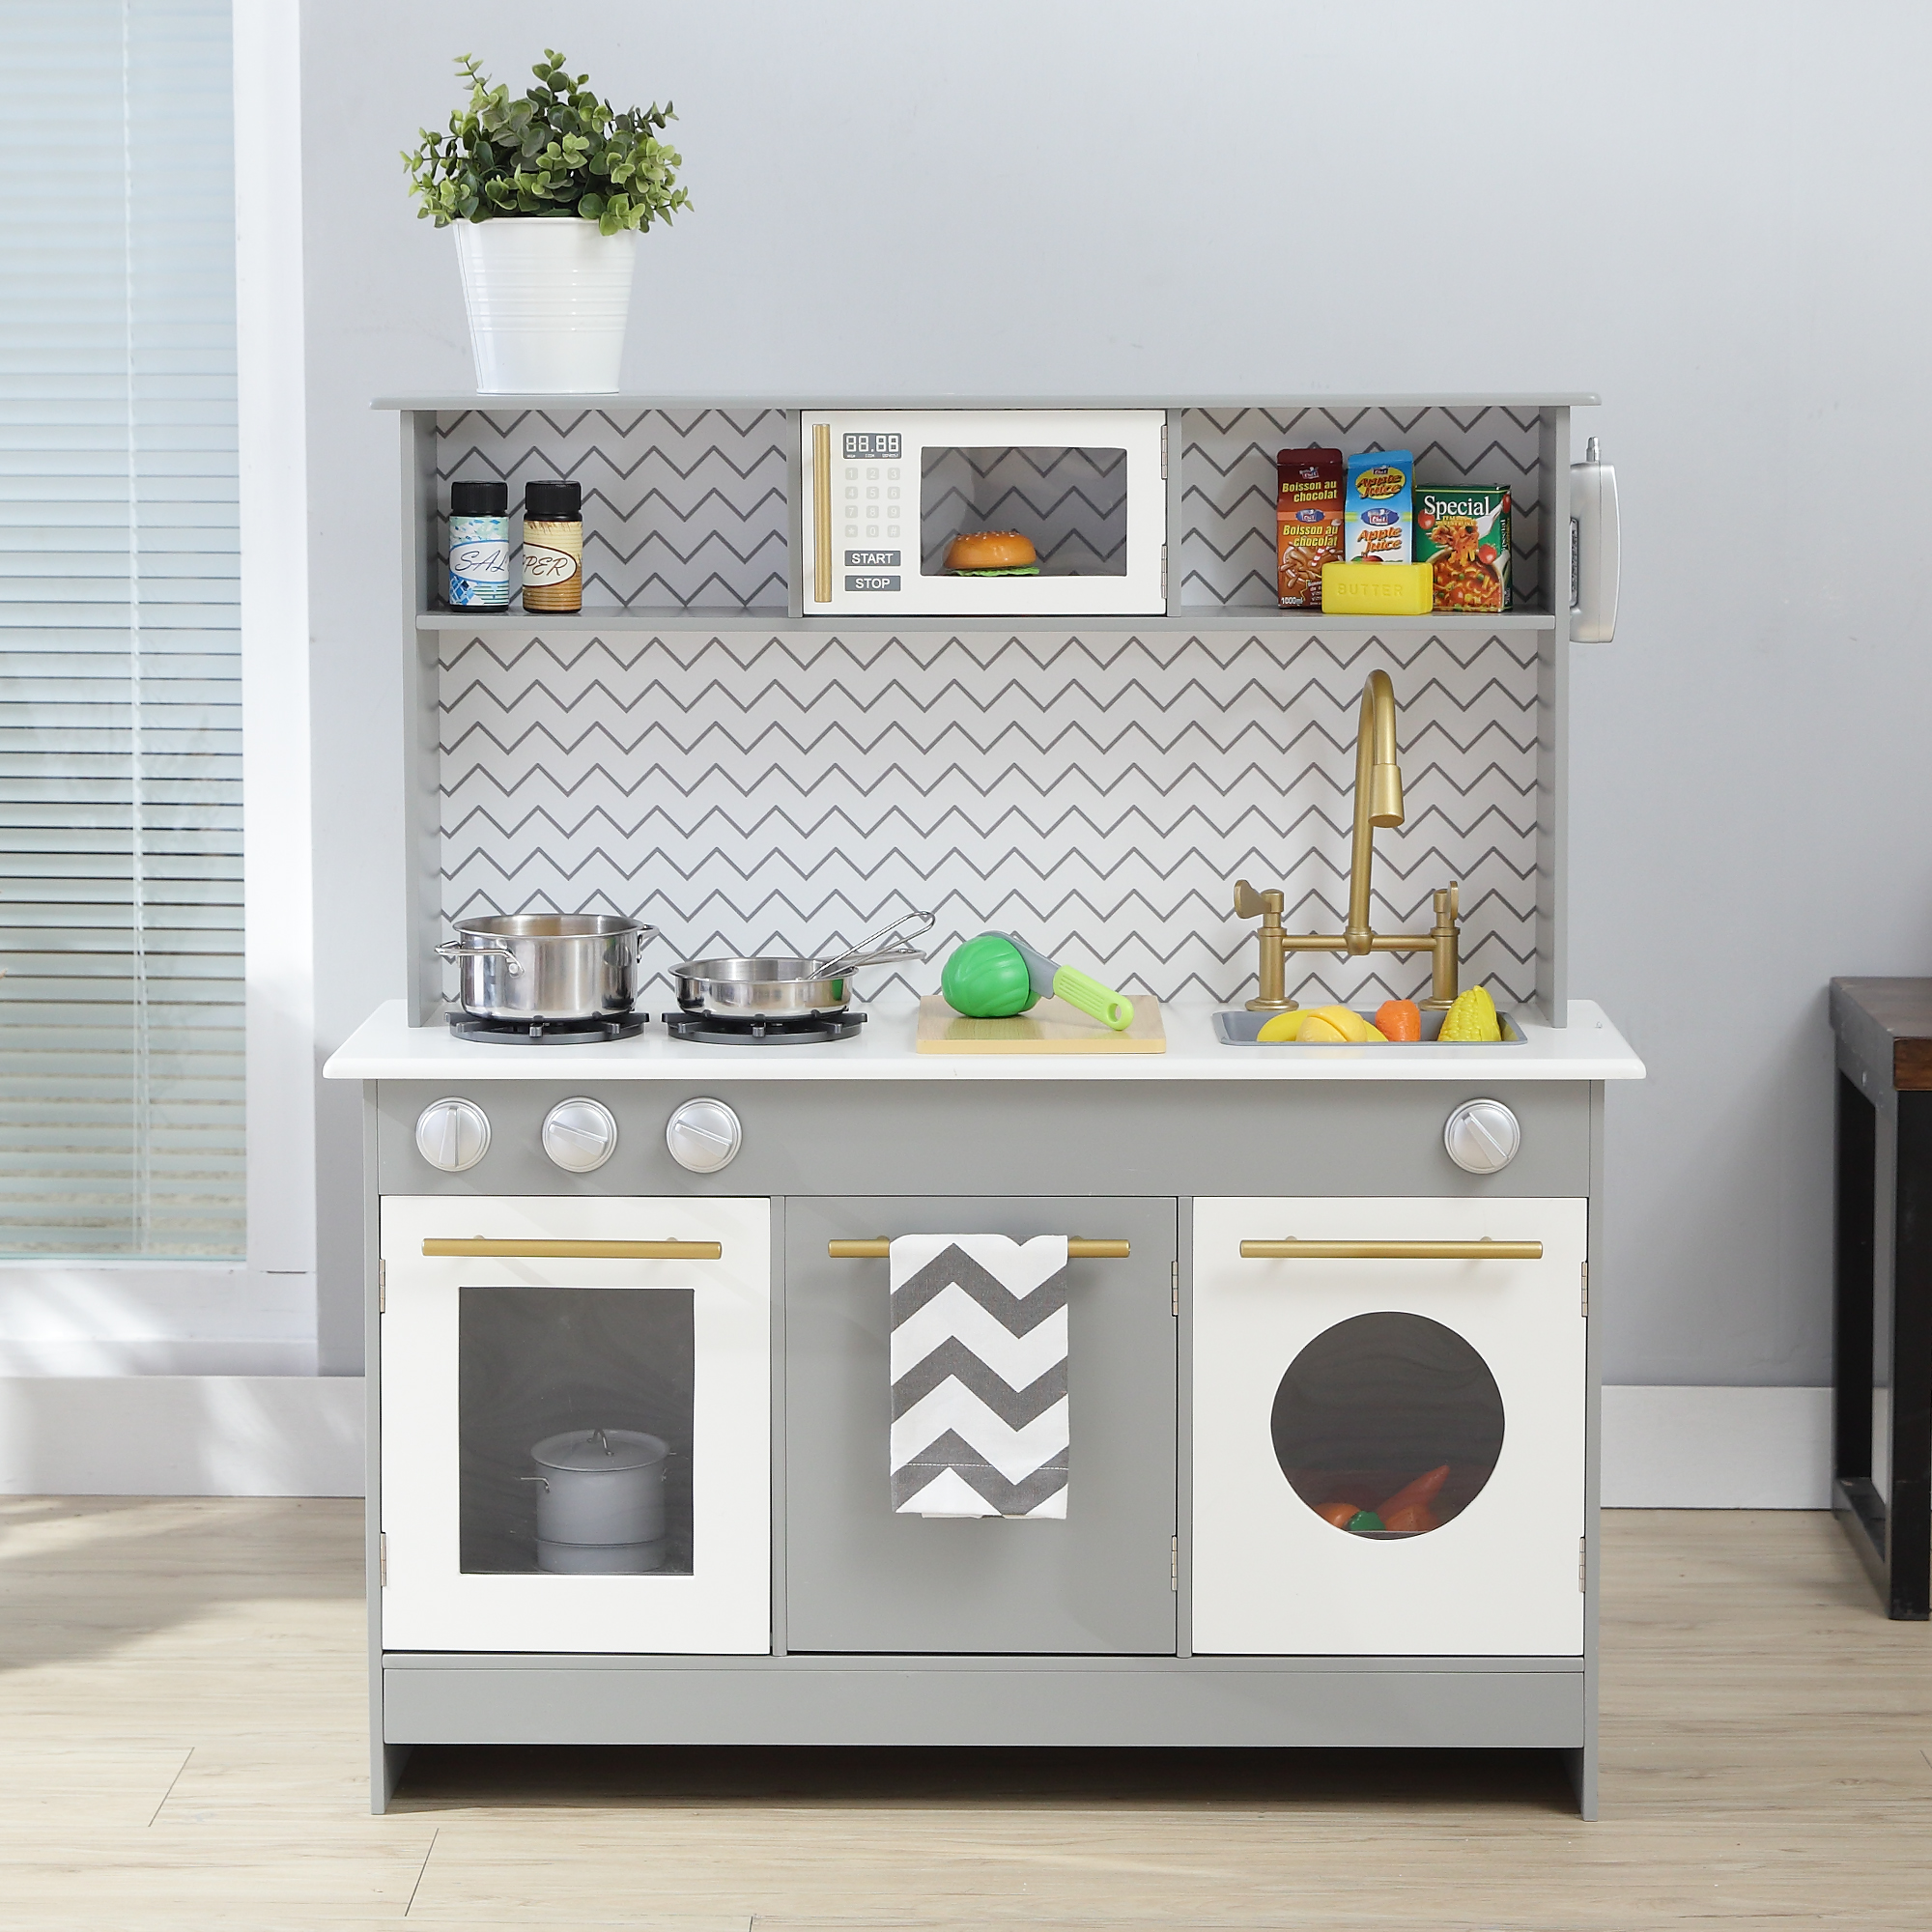 Wooden Play Kitchen With Oven Cooker Sink Teamson Kids Uk